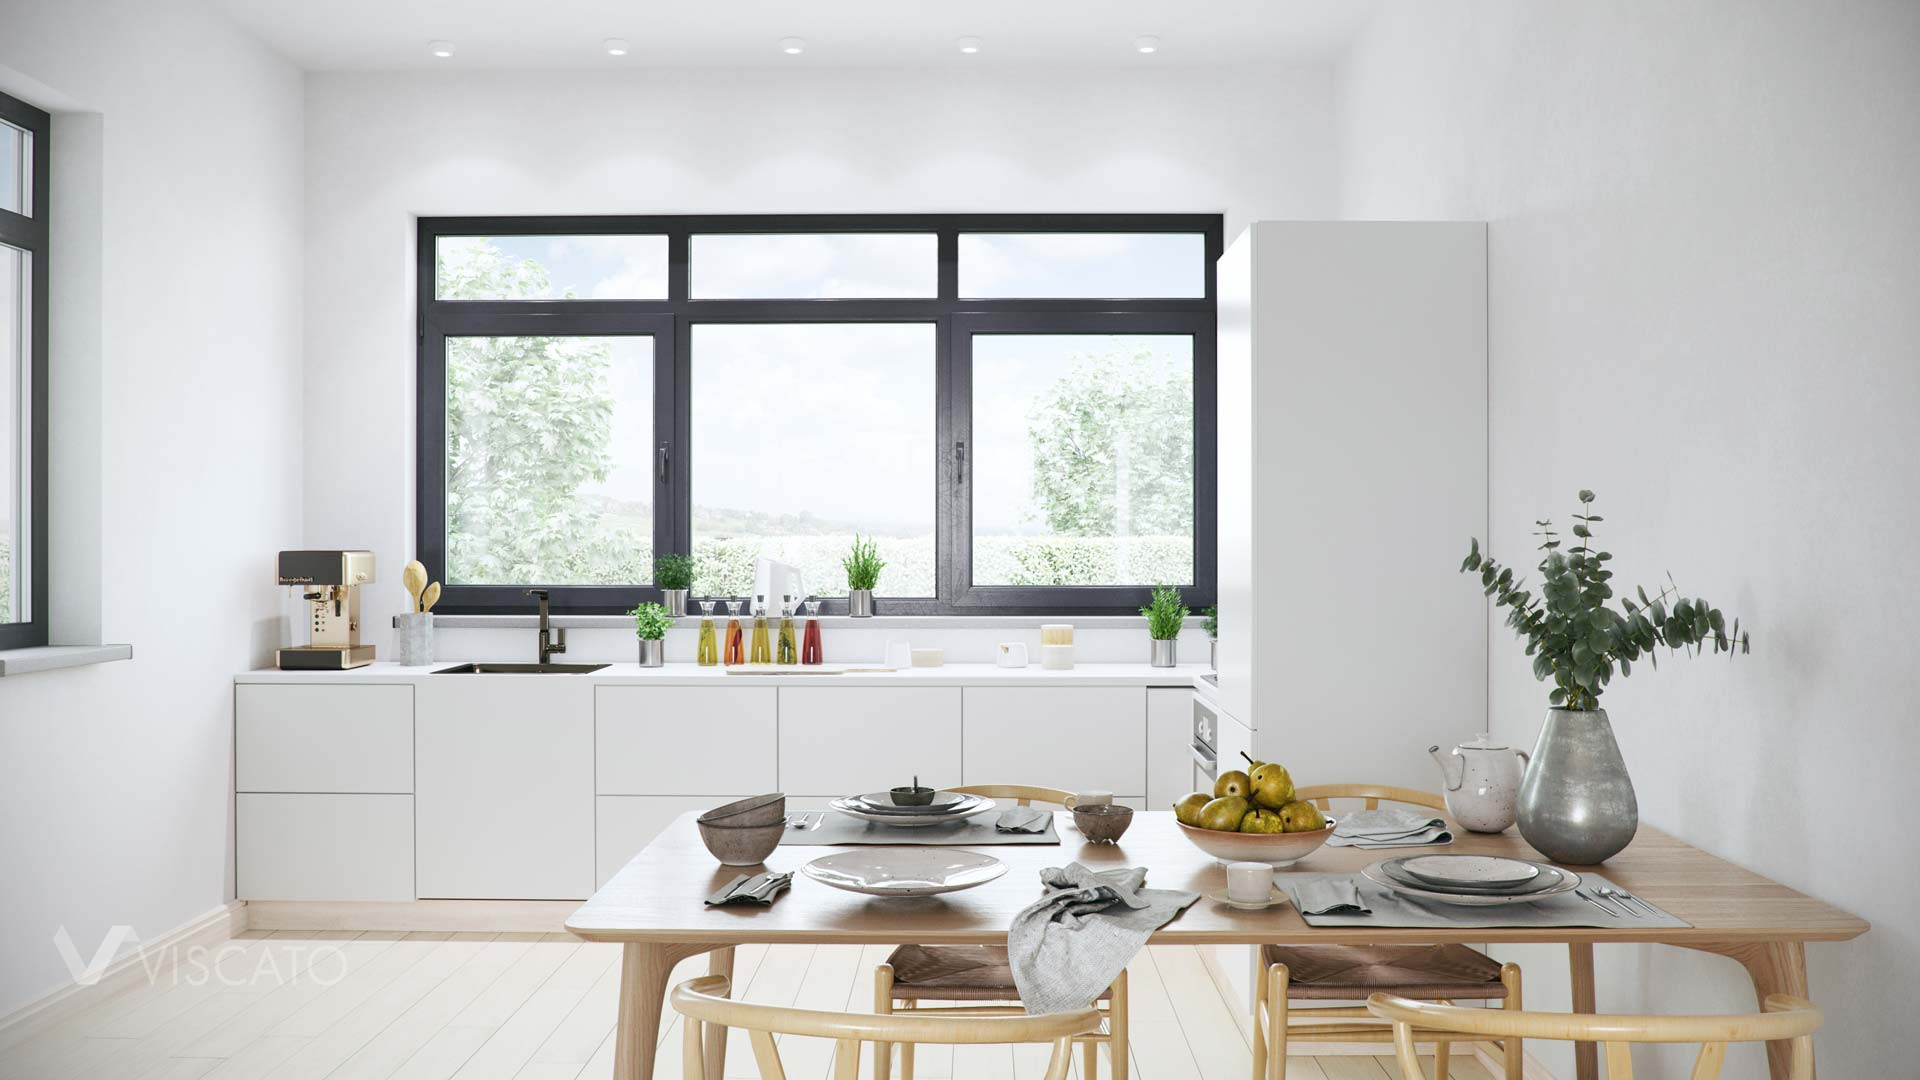 White cabinets in the kitchen, Interior visualization